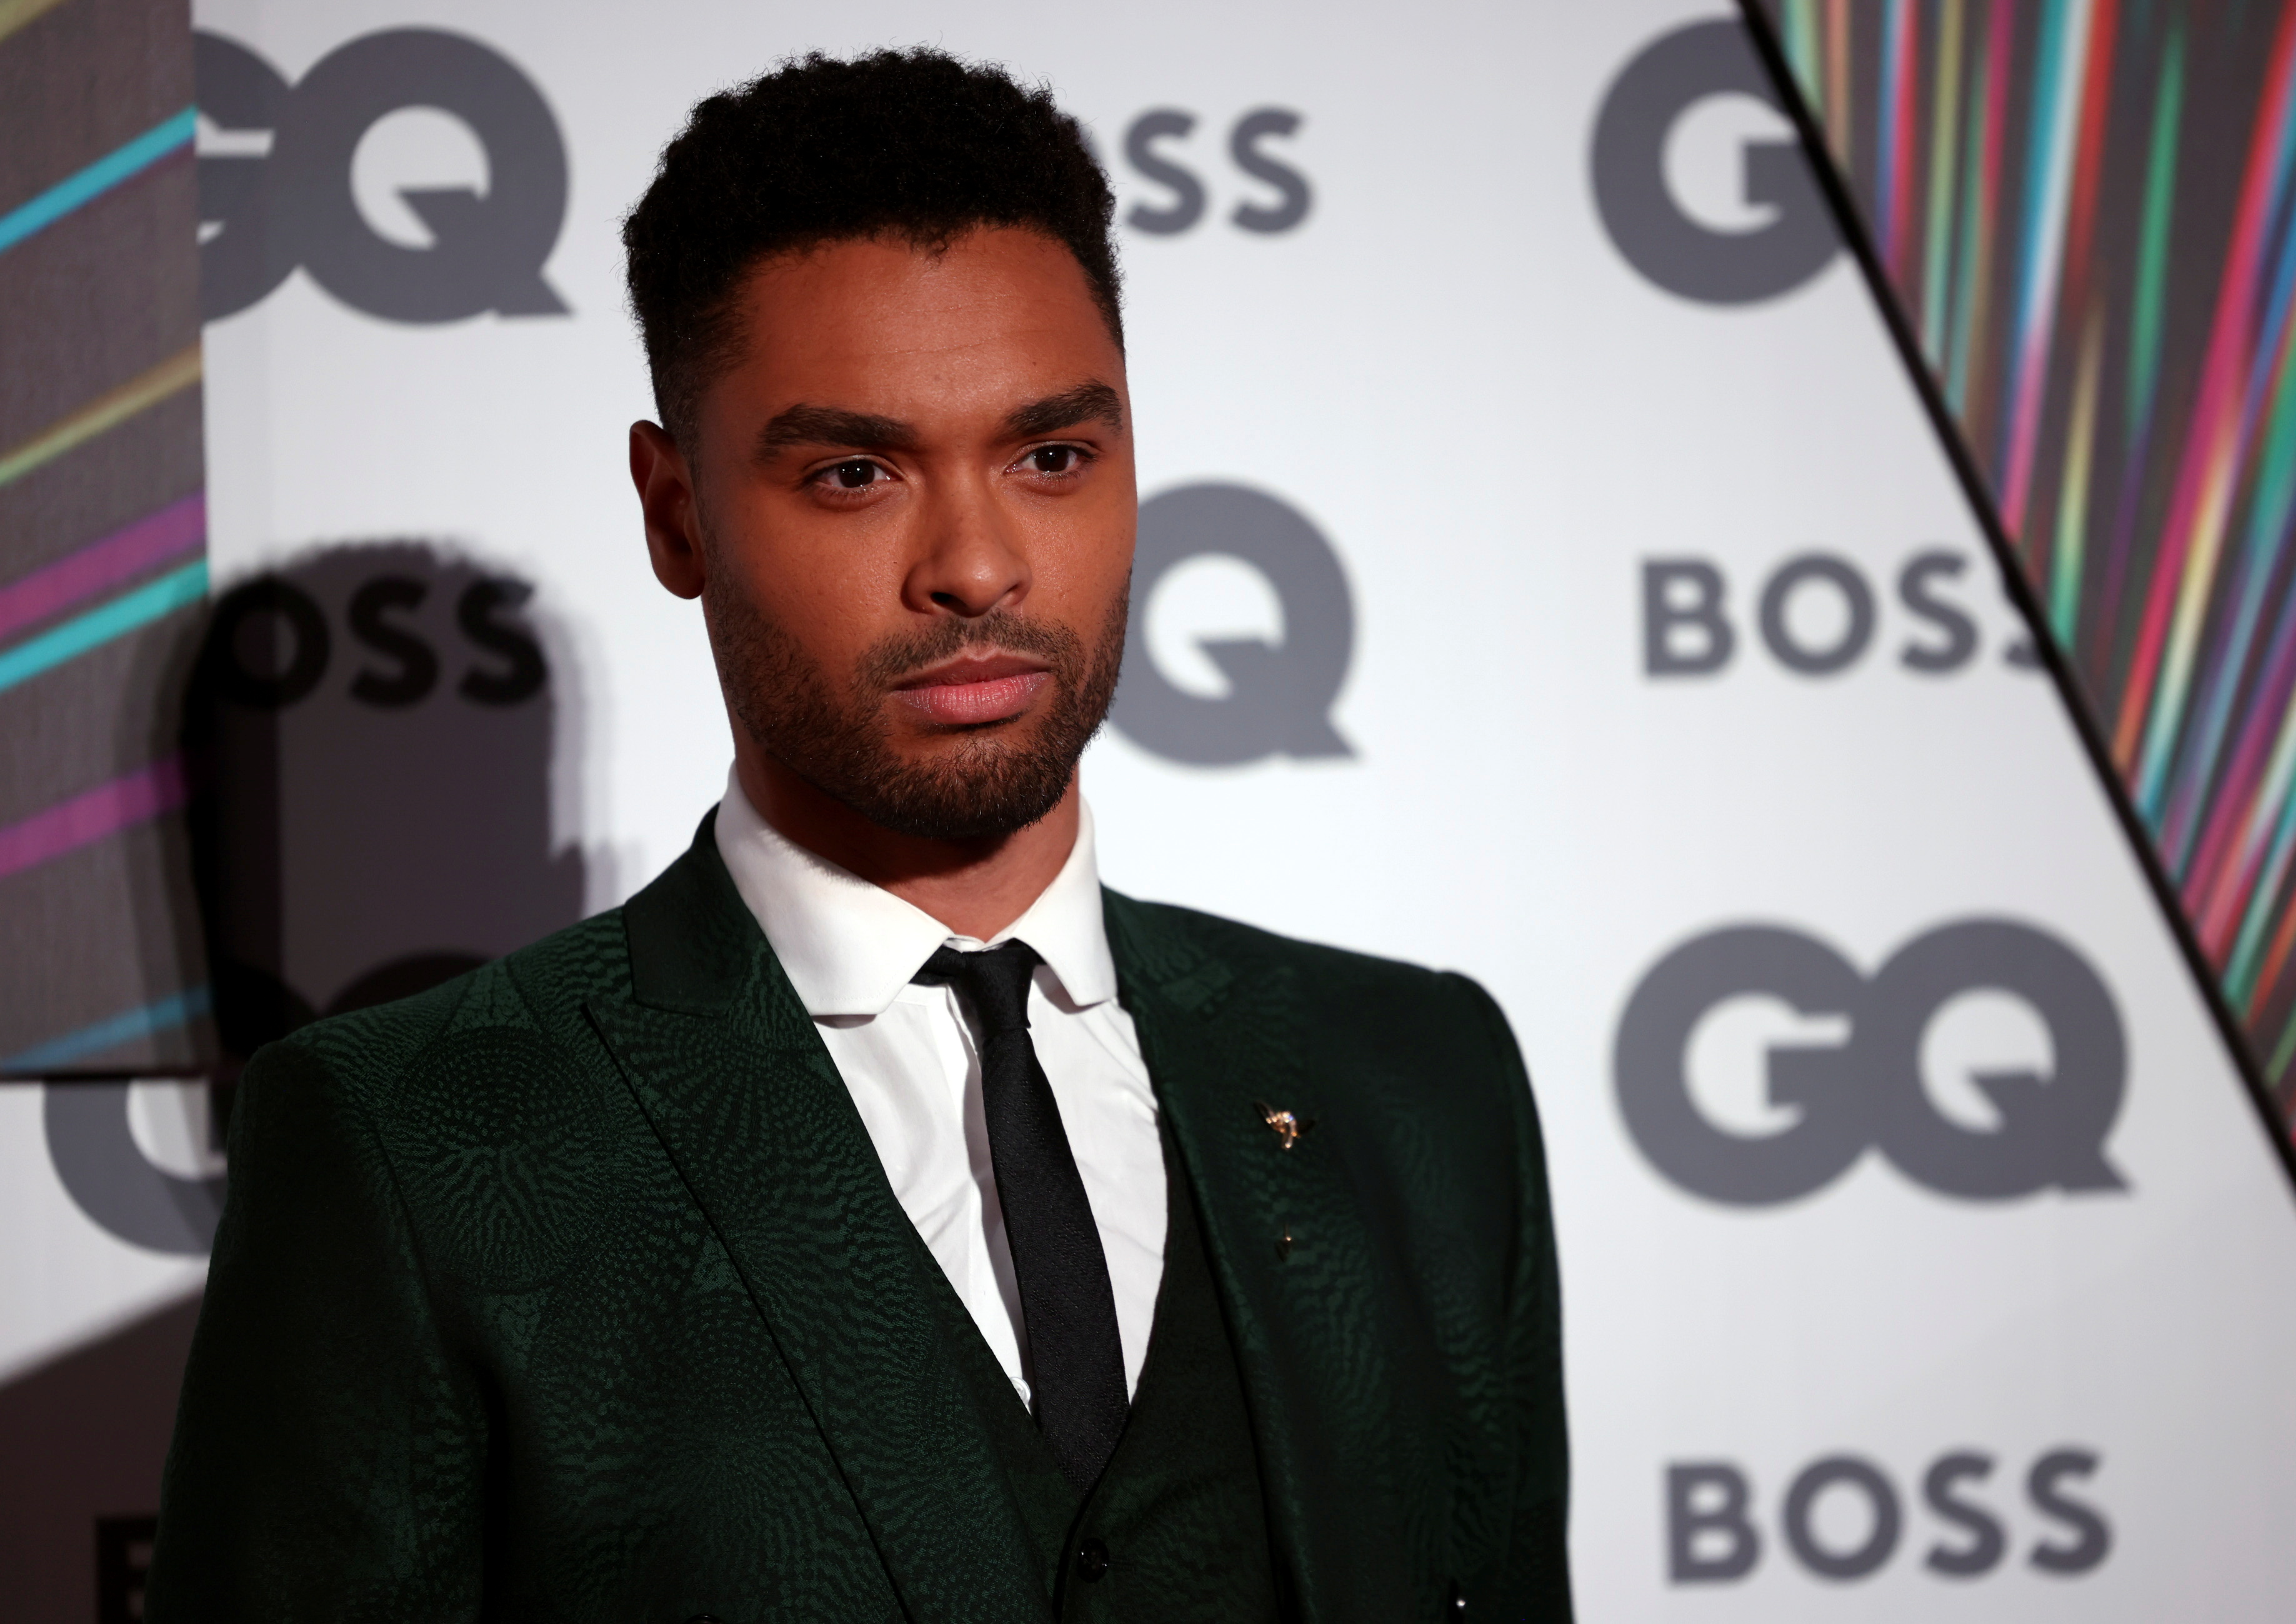 Actor Rege-Jean Page arrives to the GQ Men Of The Year Awards 2021 in London, Britain September 1, 2021. REUTERS/Henry Nicholls